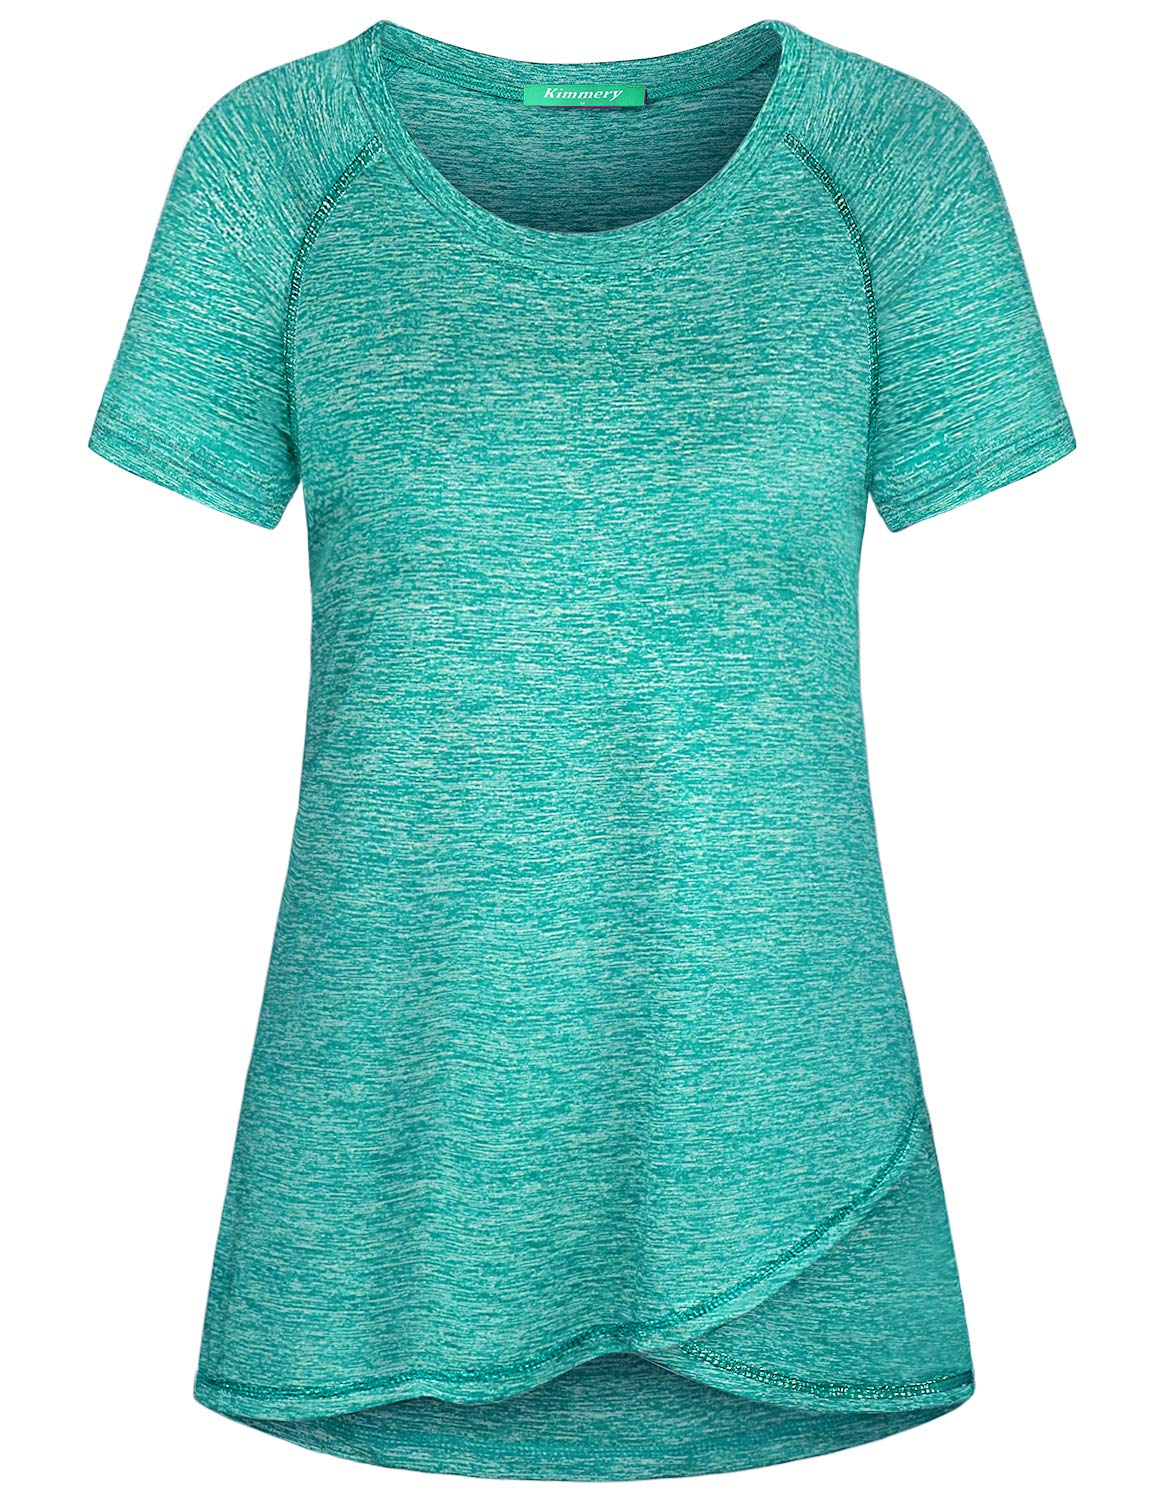 Kimmery Athletic Shirts for Women, Short Sleeve Cute Stylish Performance Active Tops Crew Neck Comfy Working out Biking Outdoor Sports Tunics Sweat Absorbent Quick Dry Beautiful Color Gym Wear Green M